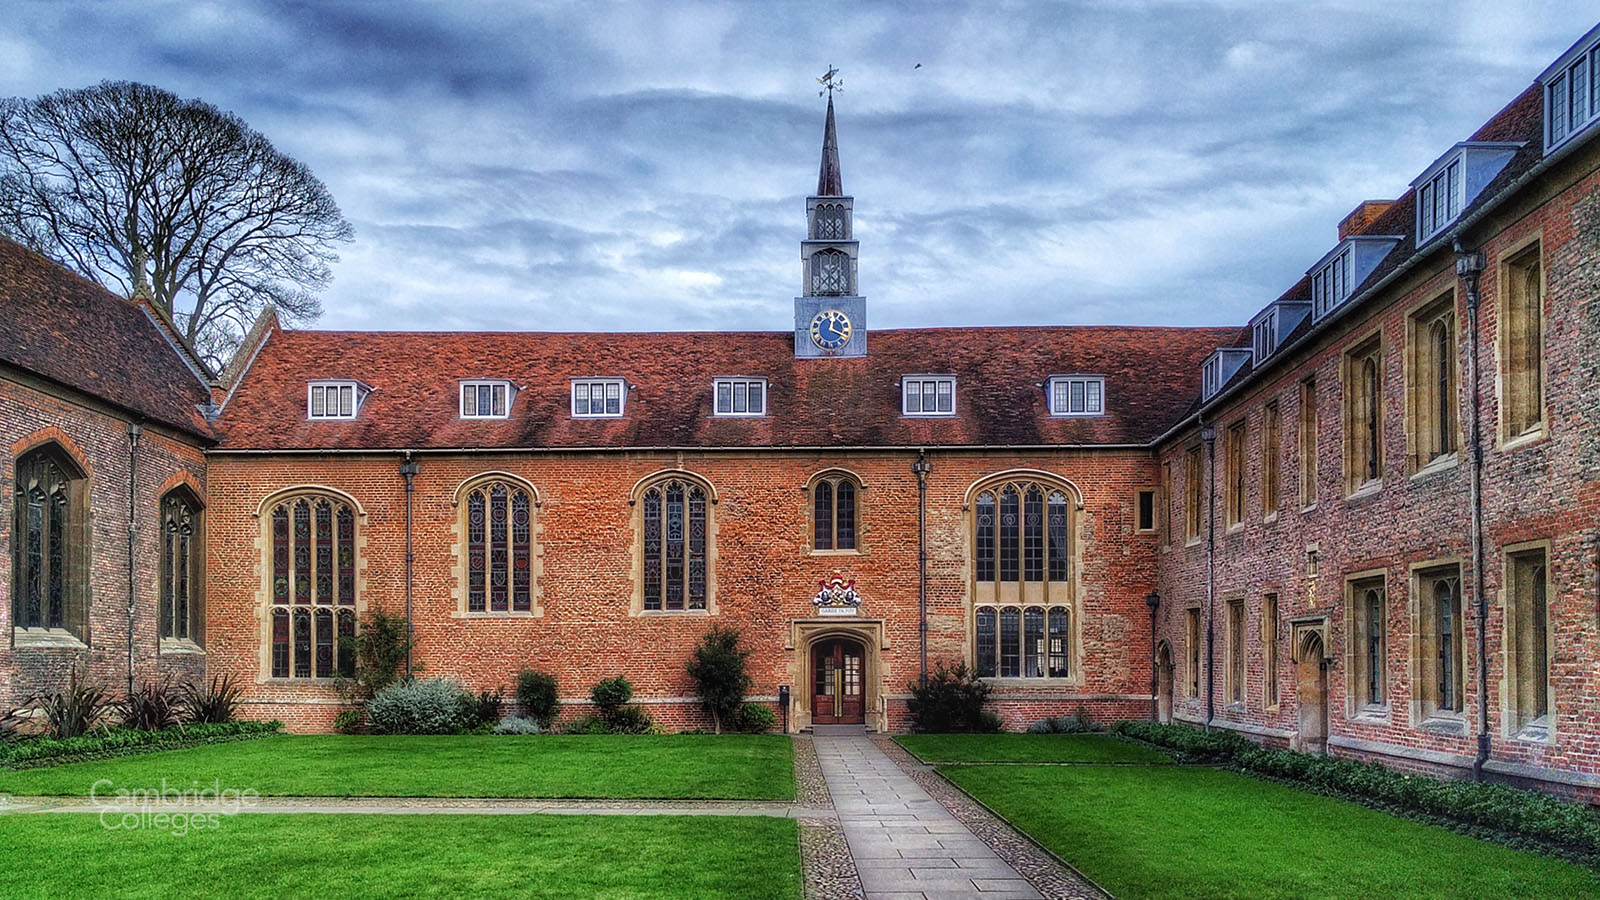 Magdalene college, Cambridge